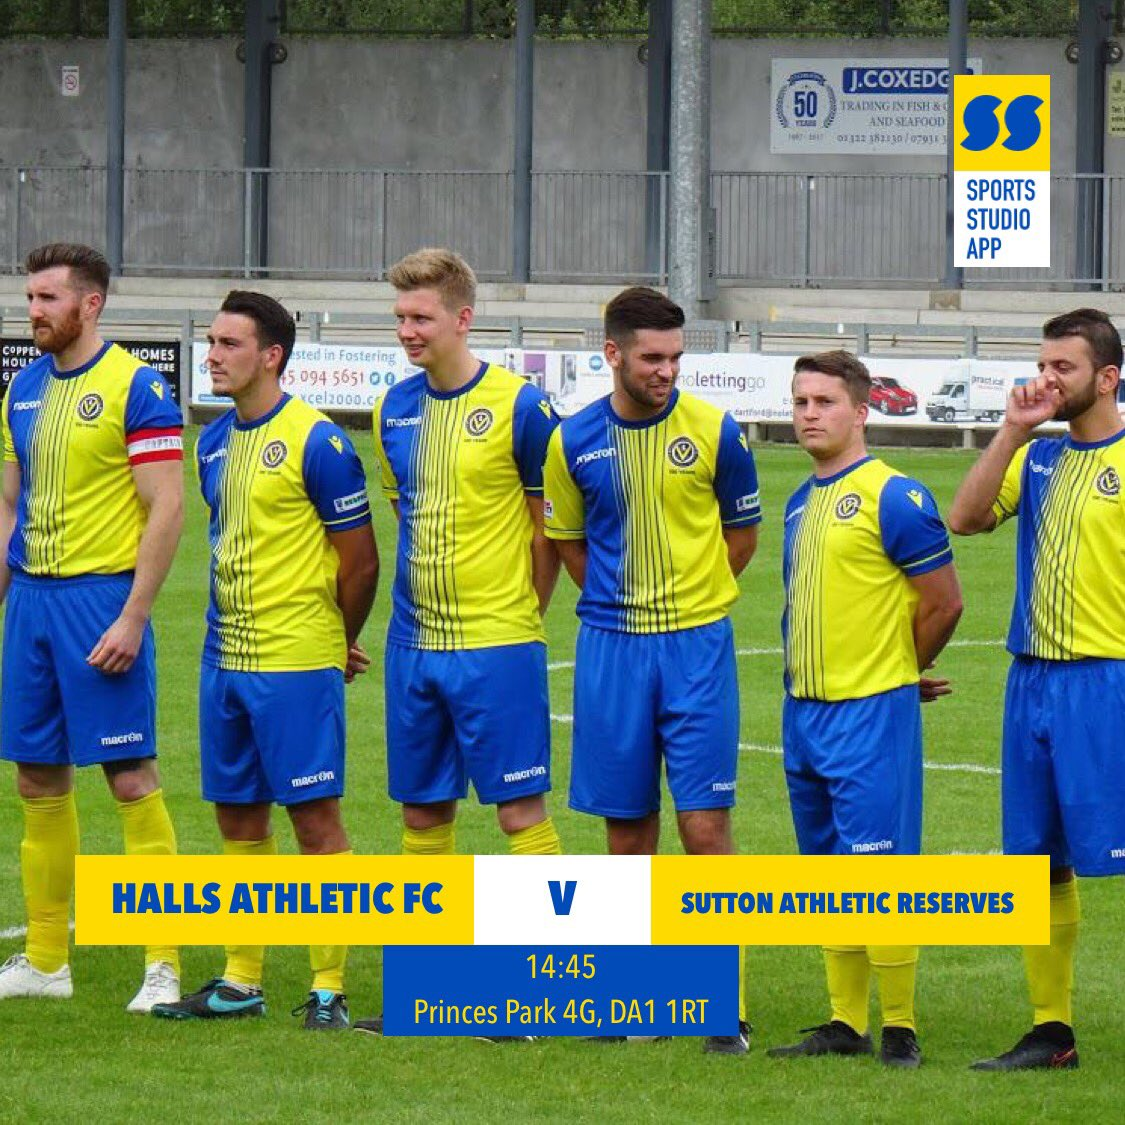 test Twitter Media - First Team host local rivals @Sutton_Athletic Reserves in a quick turn around after playing them last Saturday. Boys are on a excellent run of results and looking to add another tomorrow! 💛💙💛💙 #HAFC #100thseason https://t.co/cBYoOgsvDy